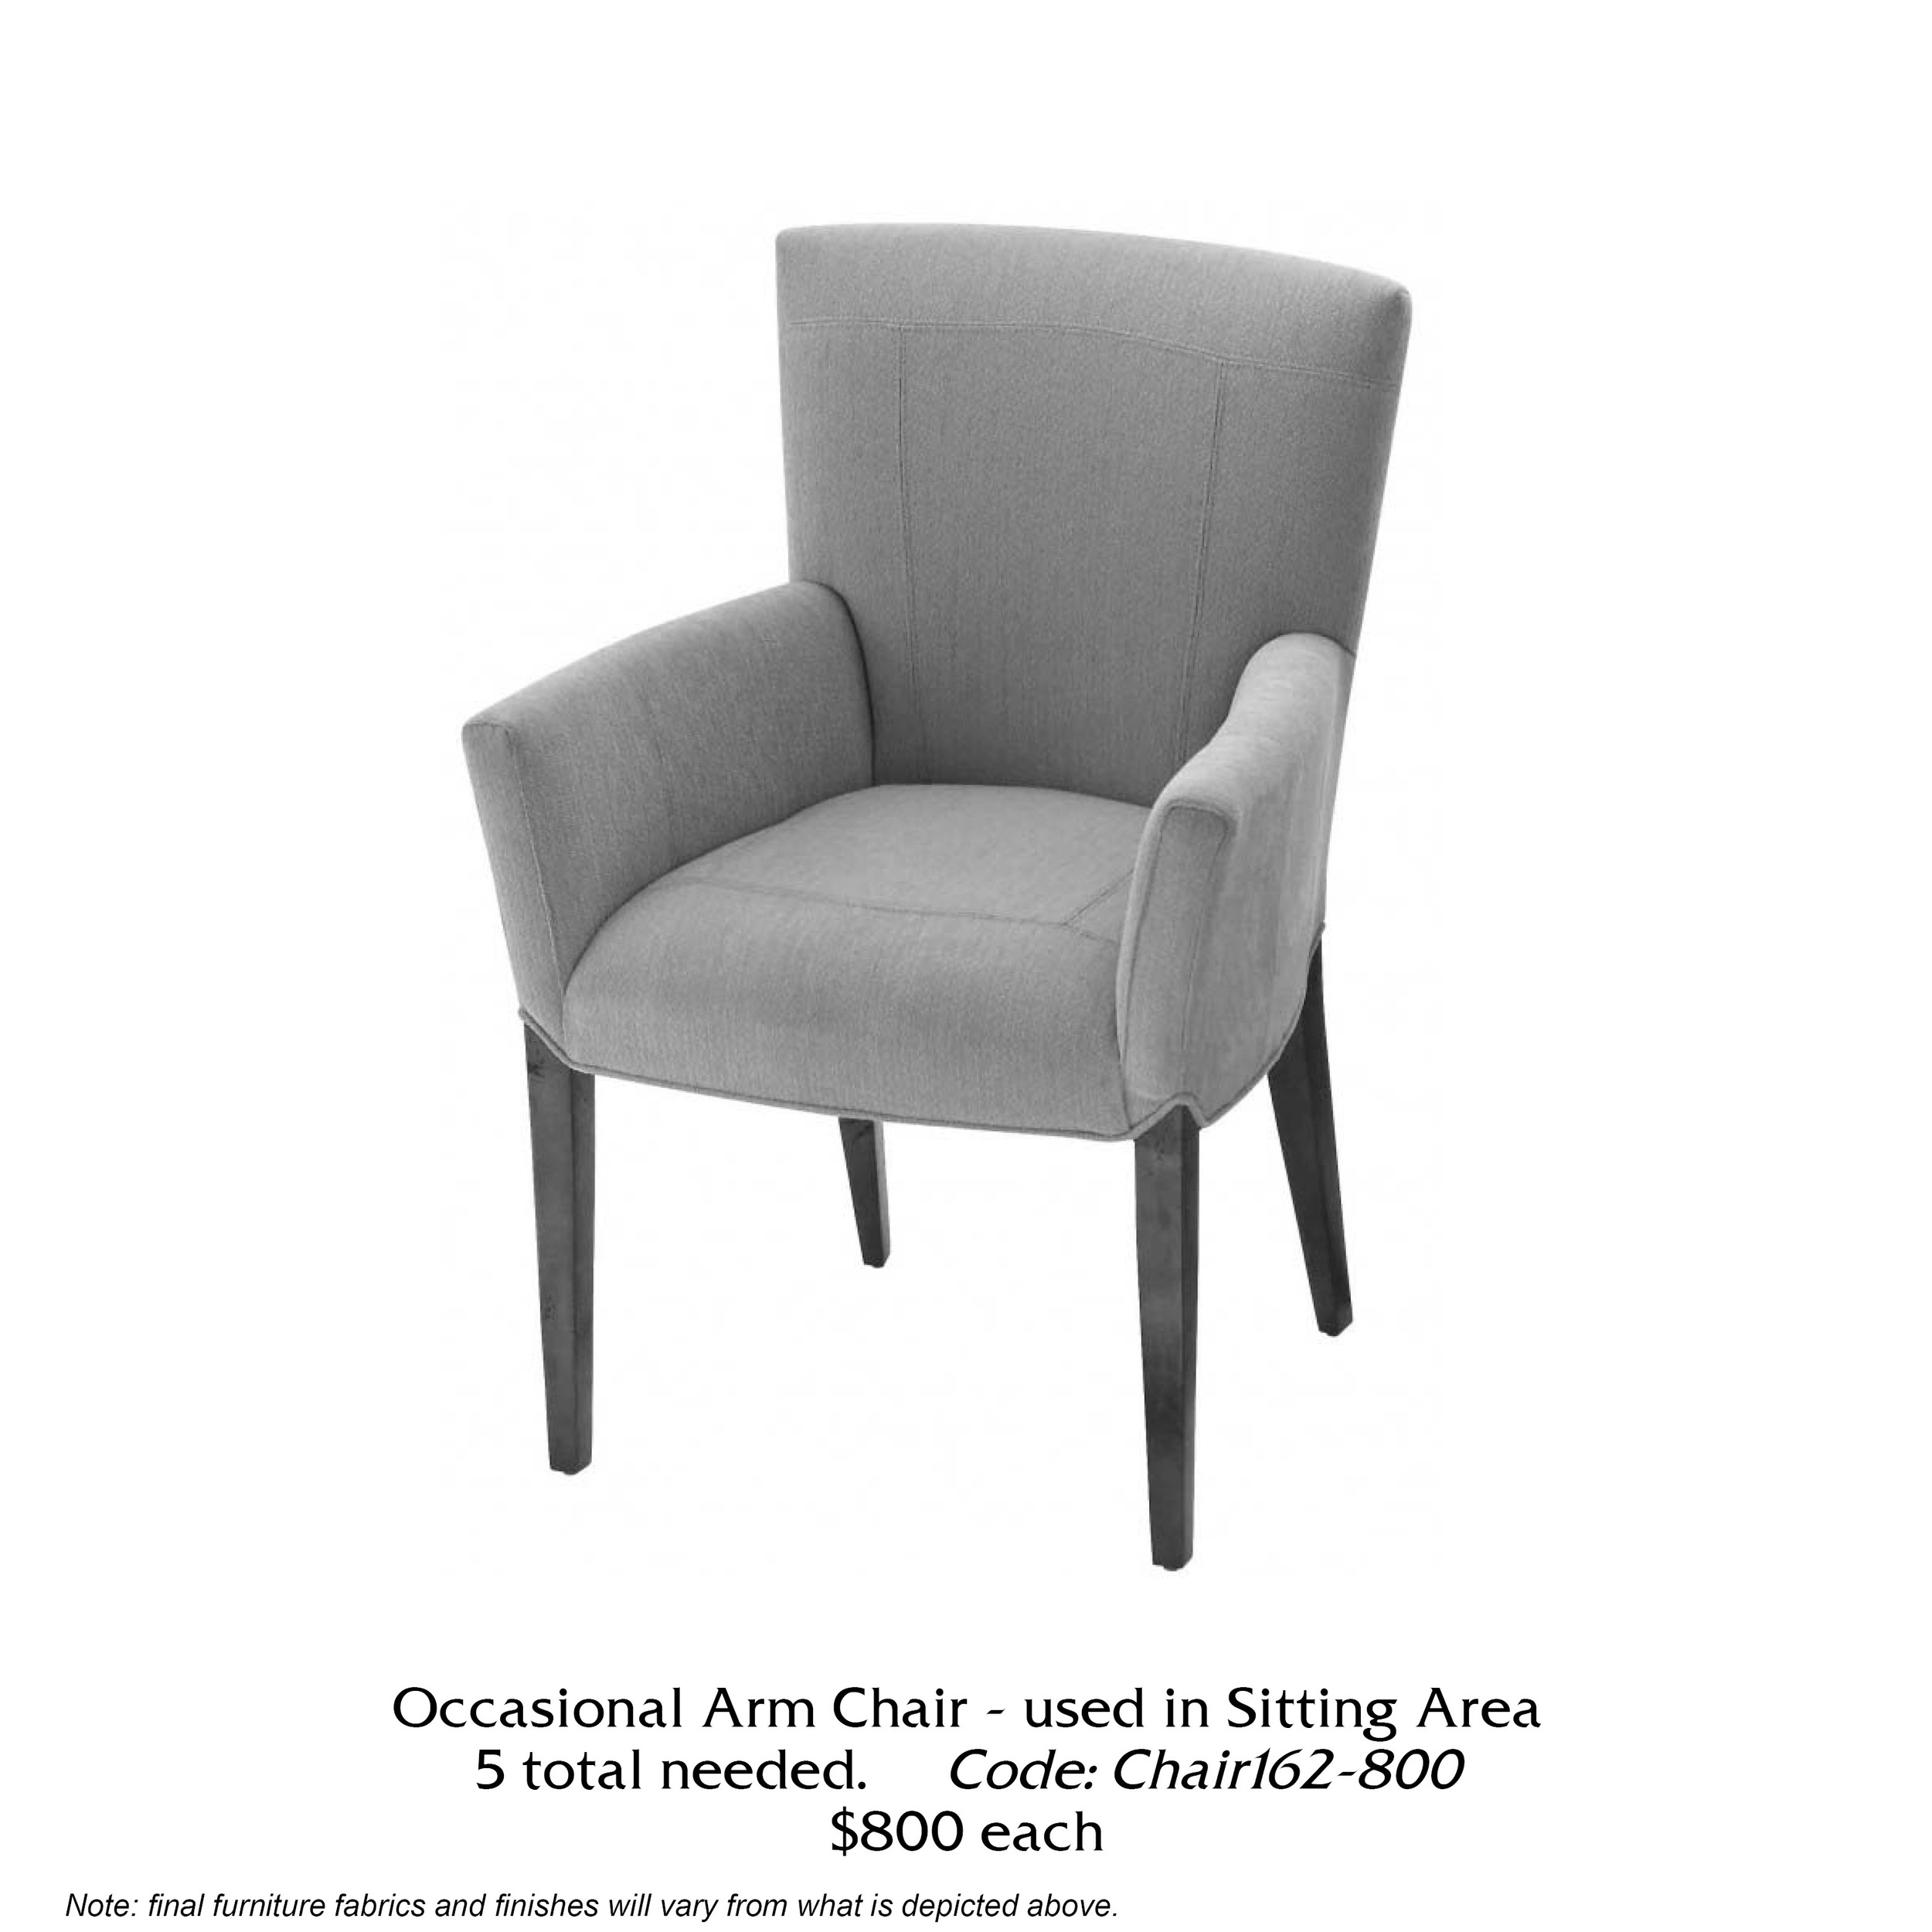 C123-F162-D101-F168-Occasional Arm Chair - 3-2.jpg